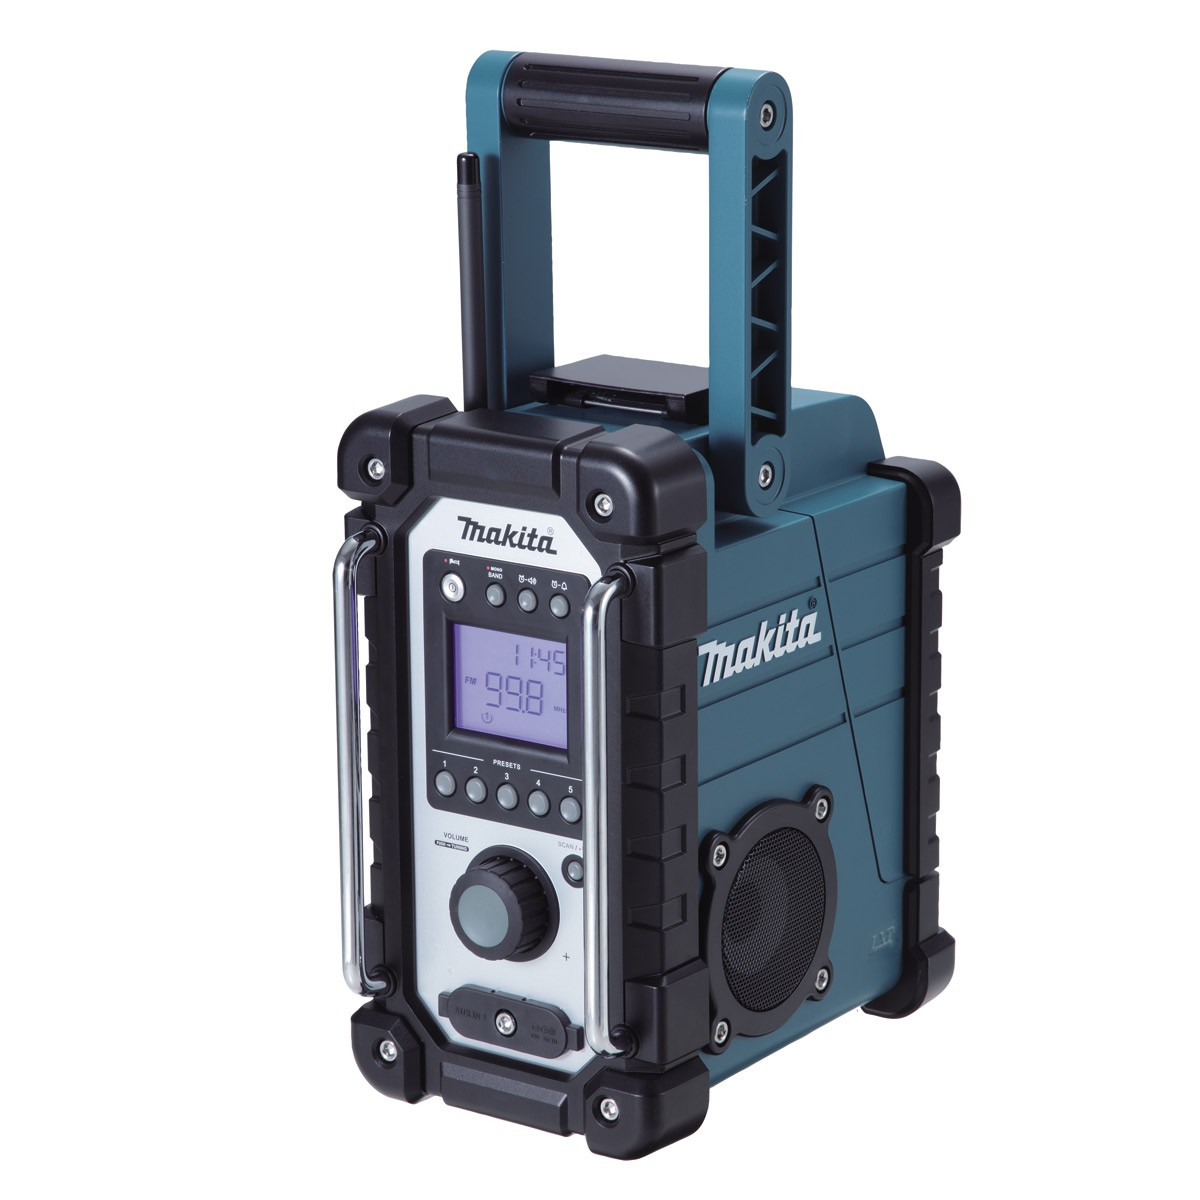 Makita DMR102 Job Site Radio